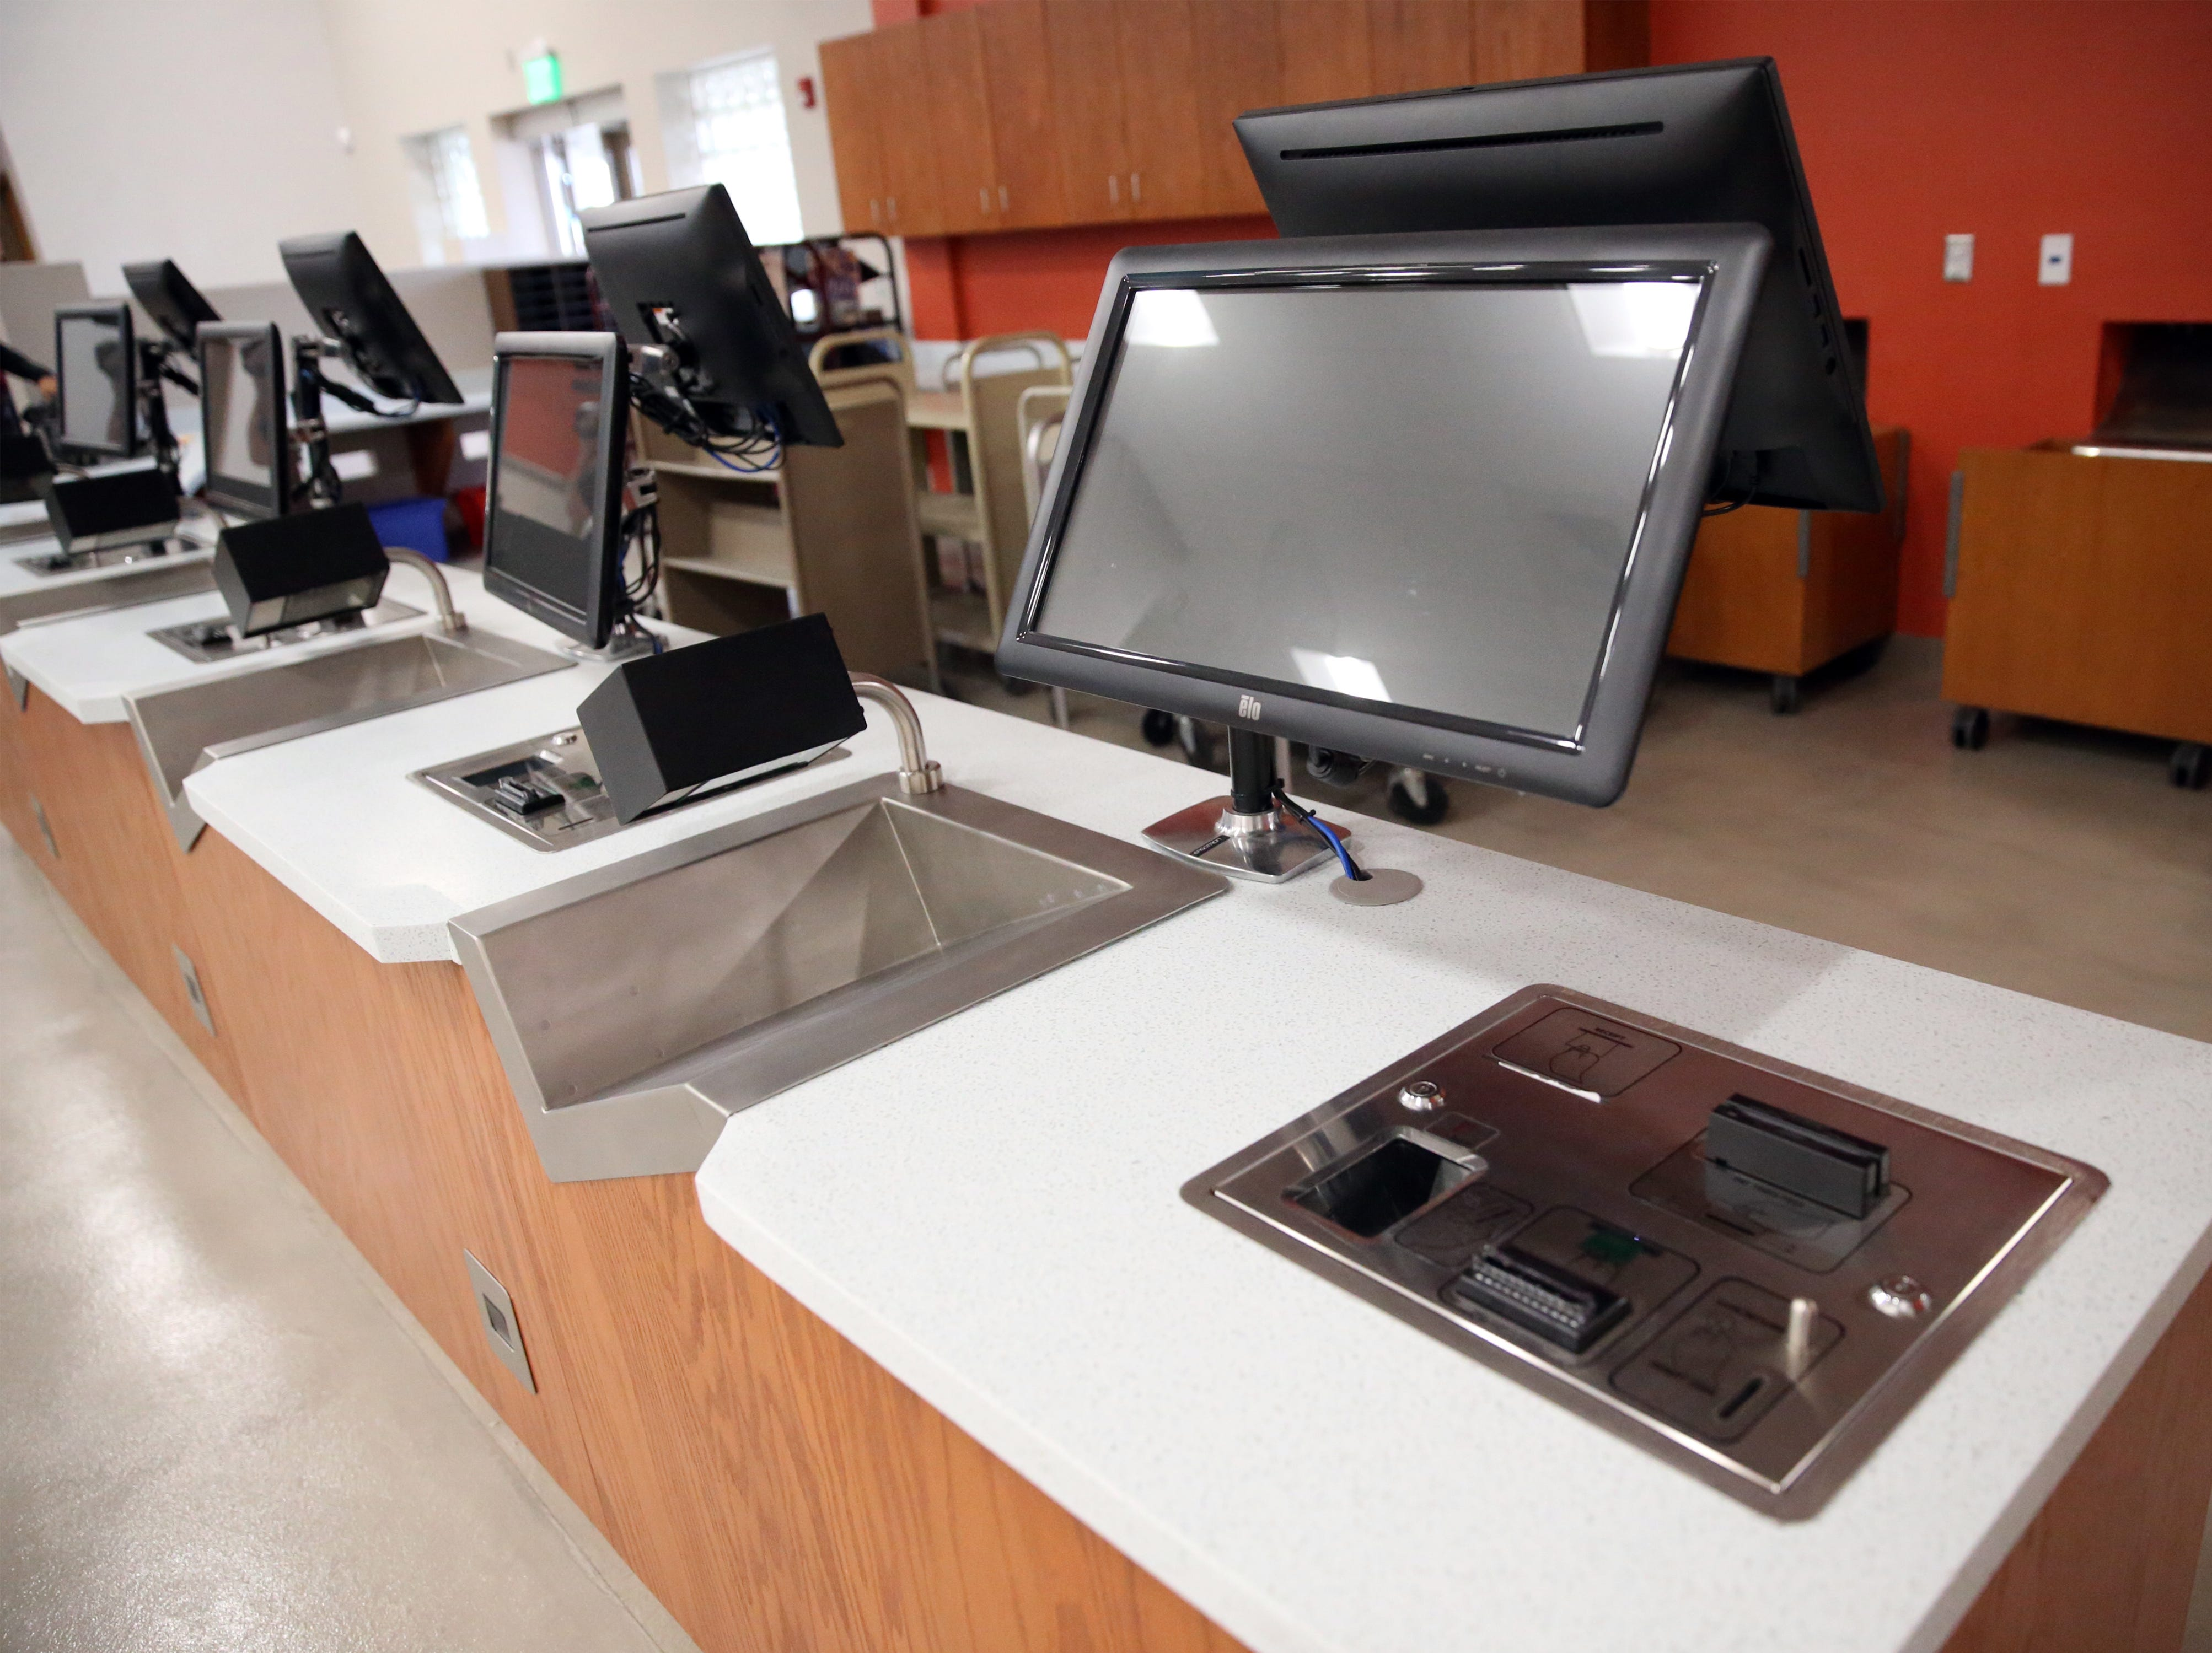 Self serve book checkout stations are among the improvements to the Richard Burges Library.